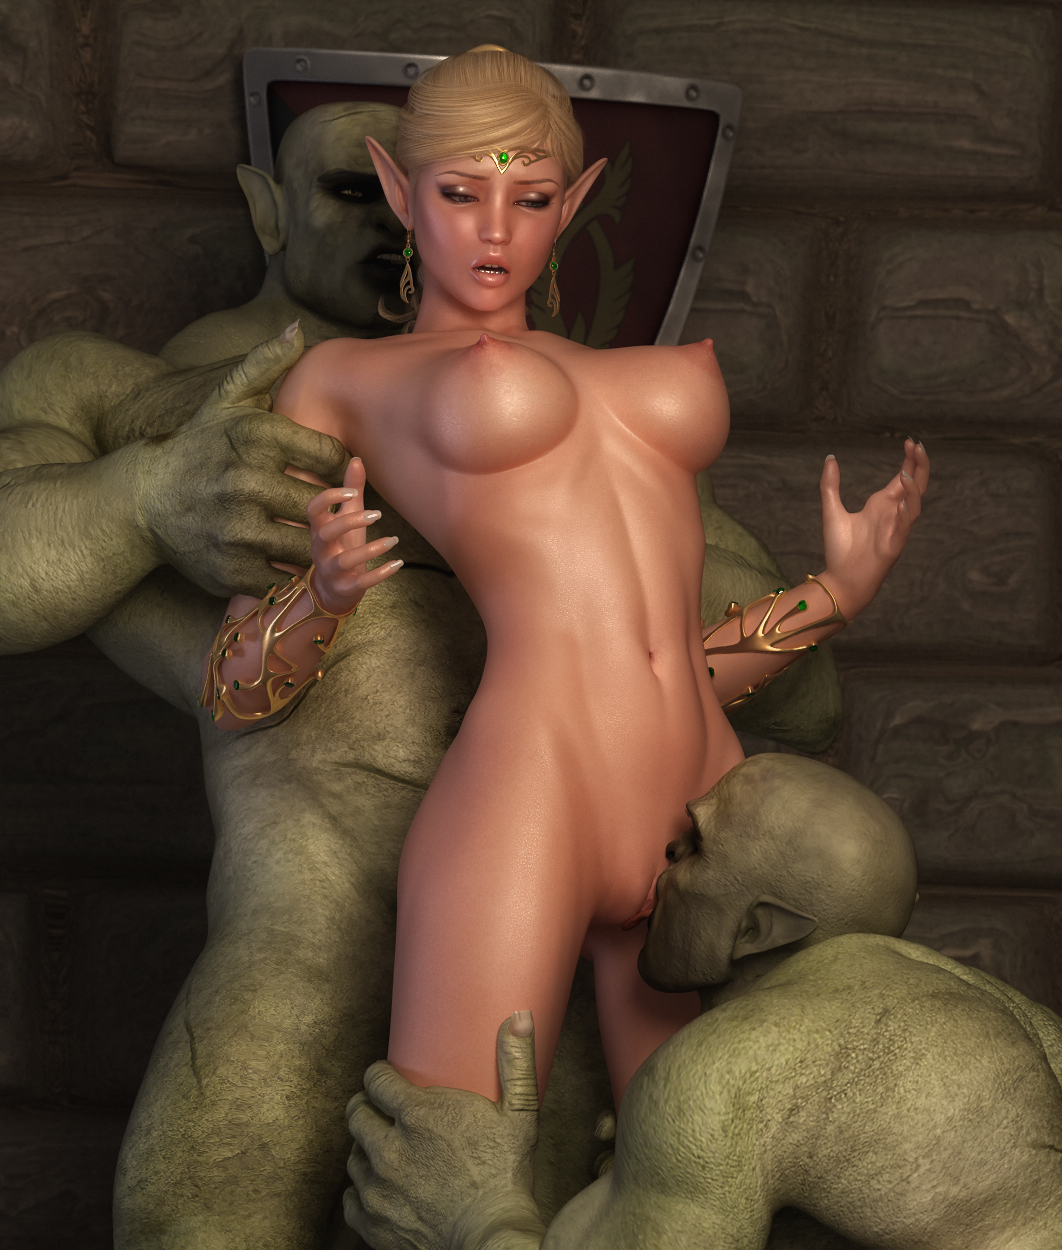 Elf dragon porno 3d porn gallery